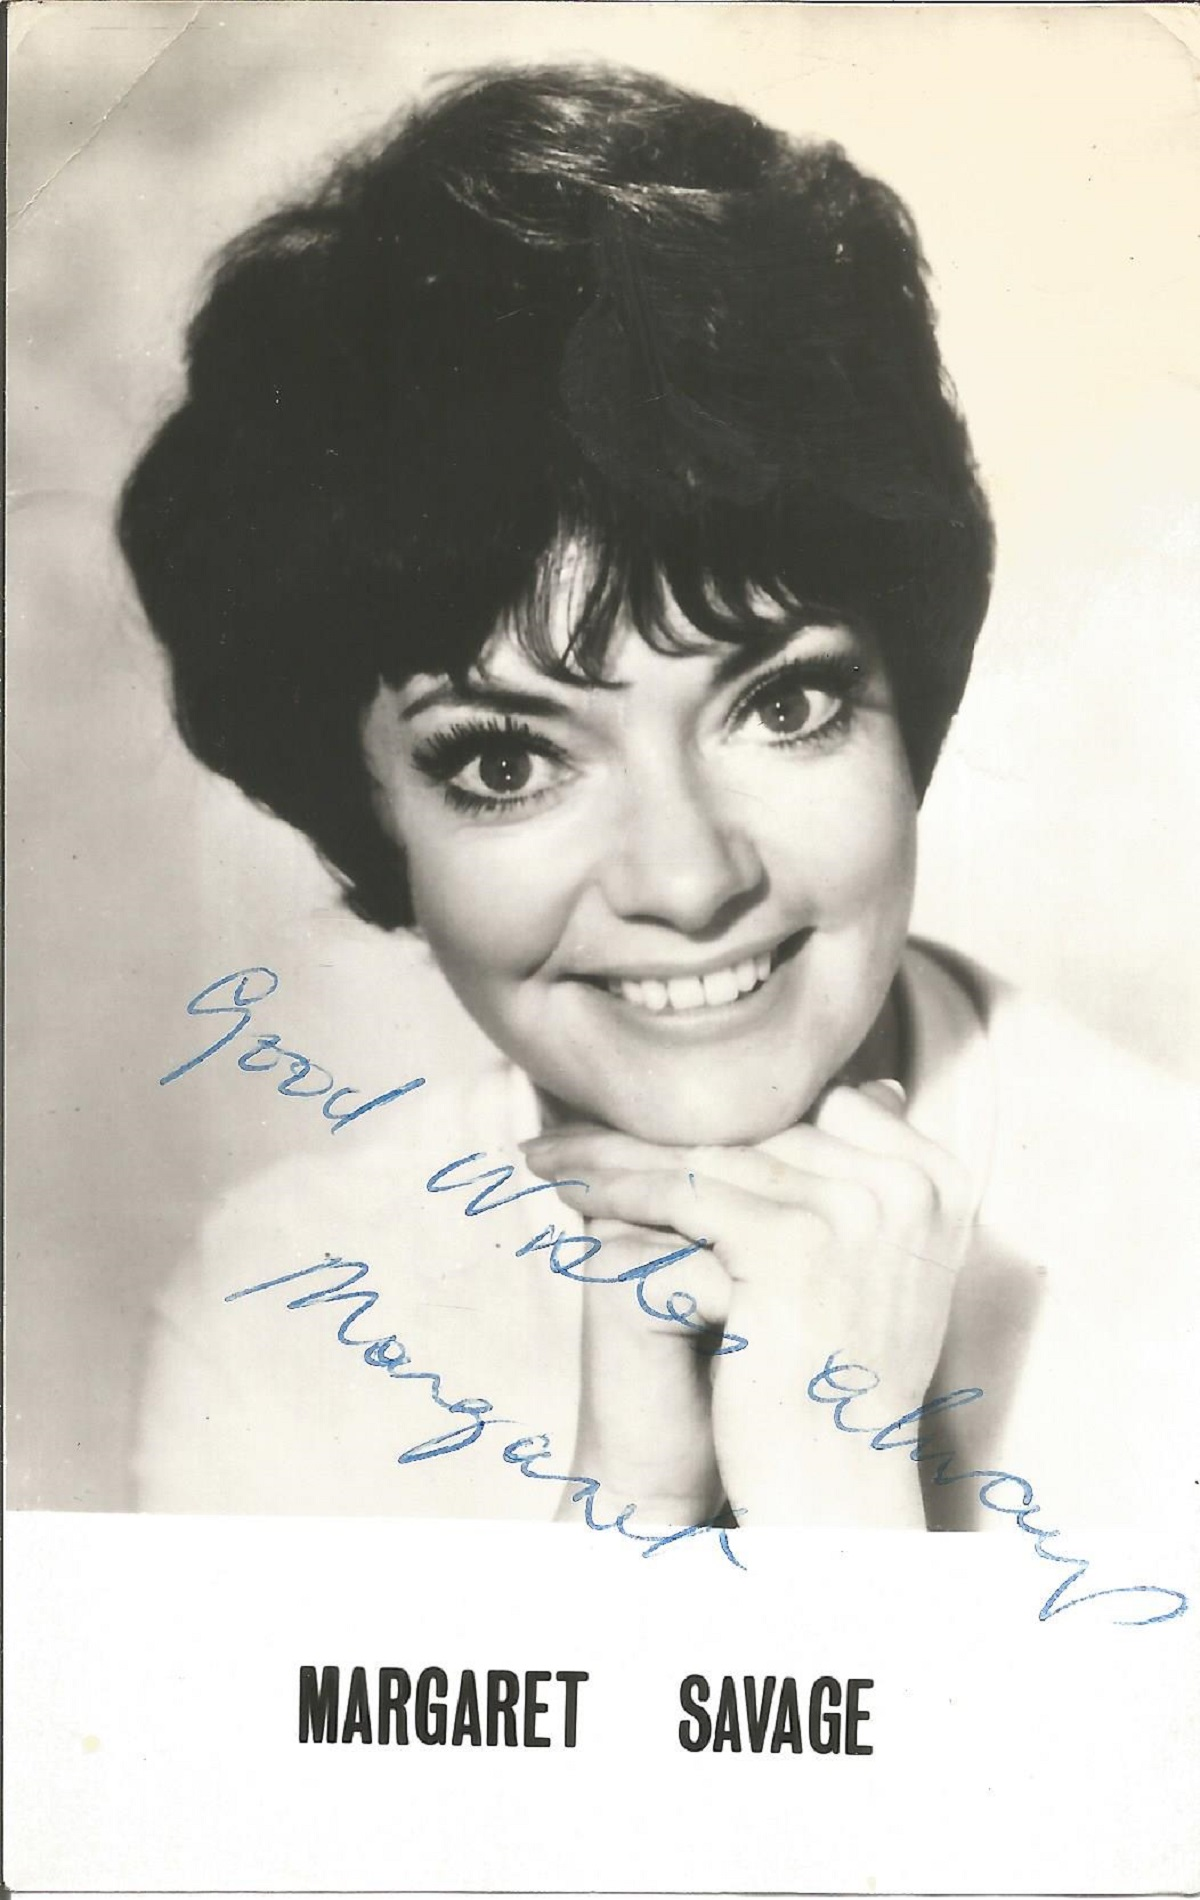 Margaret Savage signed 6 x 4 inch b/w photo. Good Condition. All autographs come with a. Good